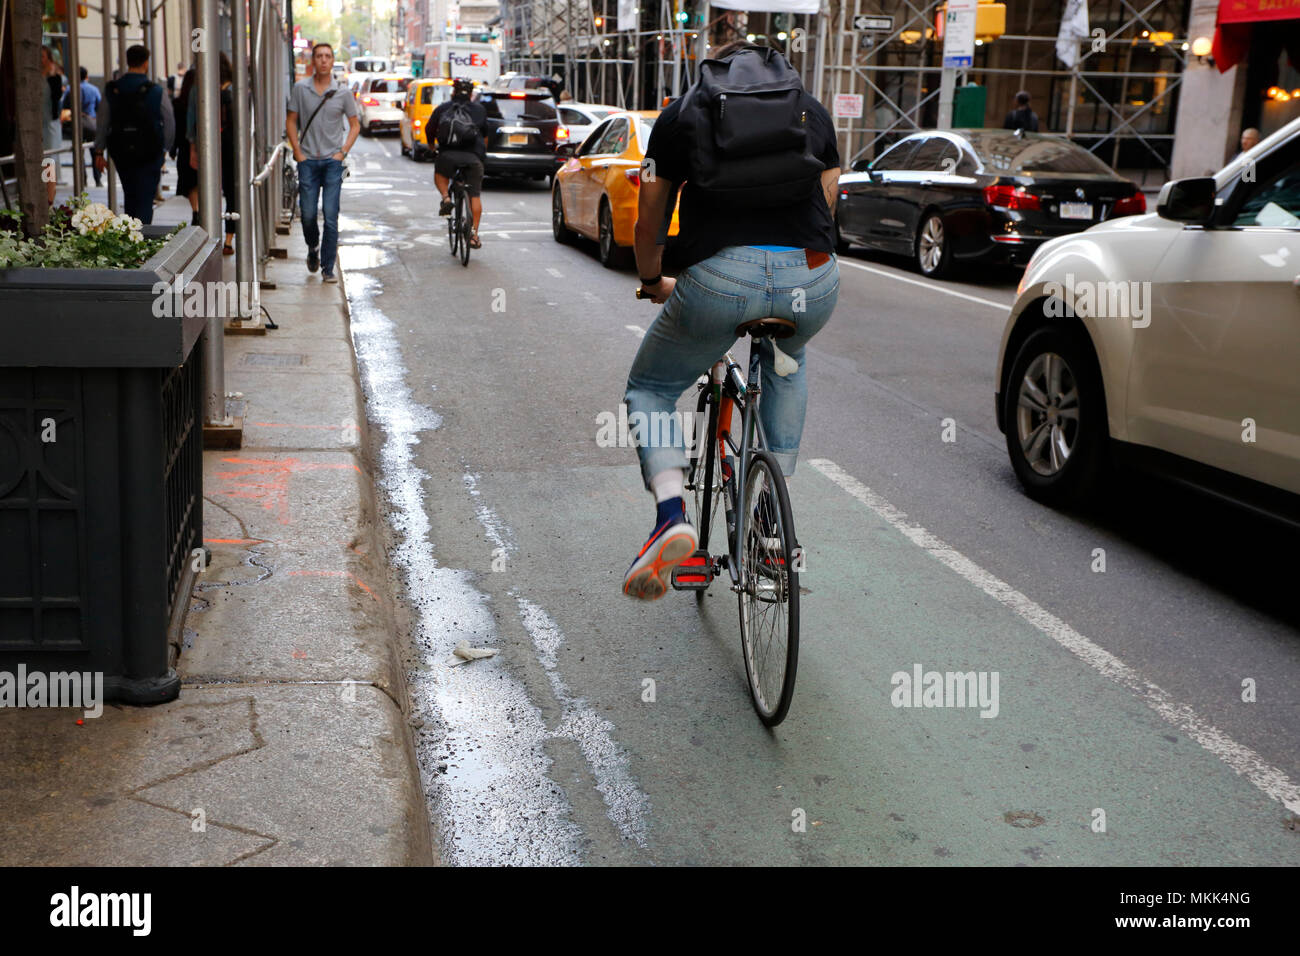 A cyclist in a bike lane, the bicycle equipped with a bike balls tail light dangling off the seat. - Stock Image